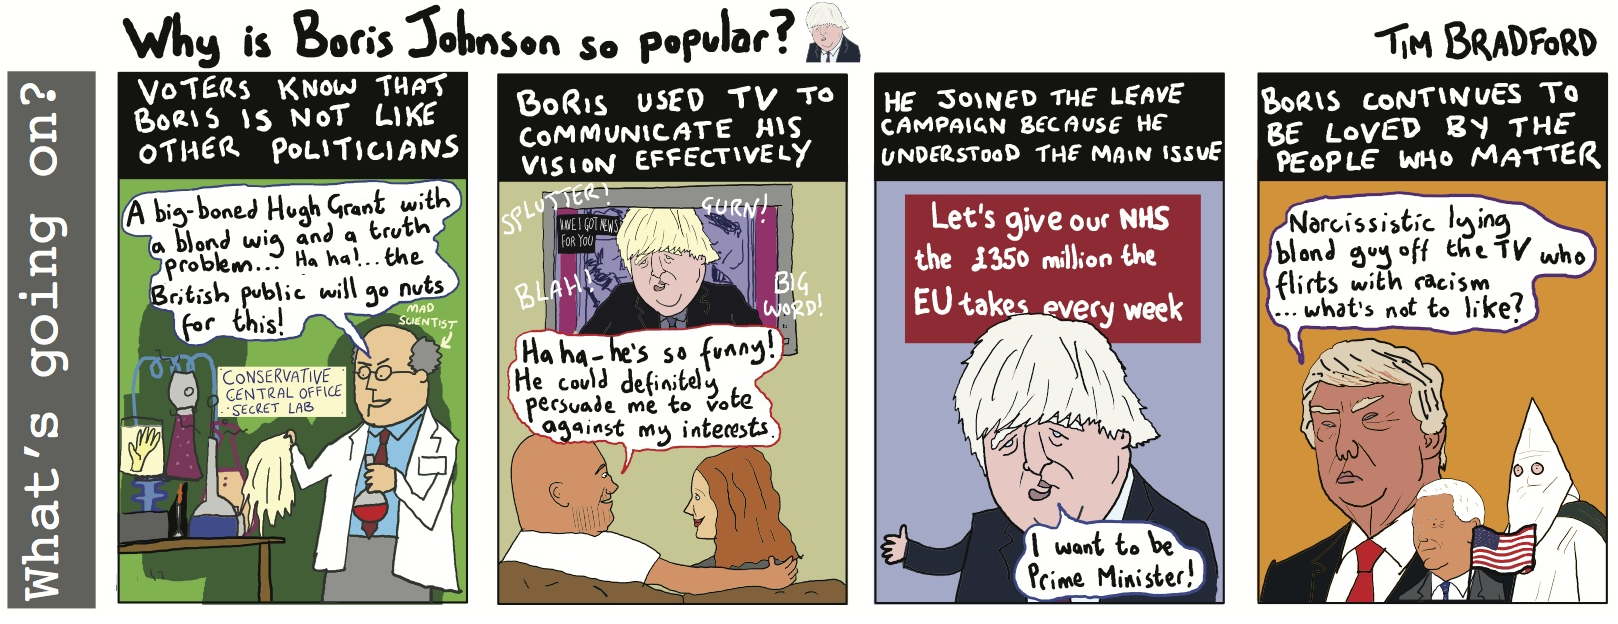 Copy of Why is Boris Johnson so popular? - 09/12/16